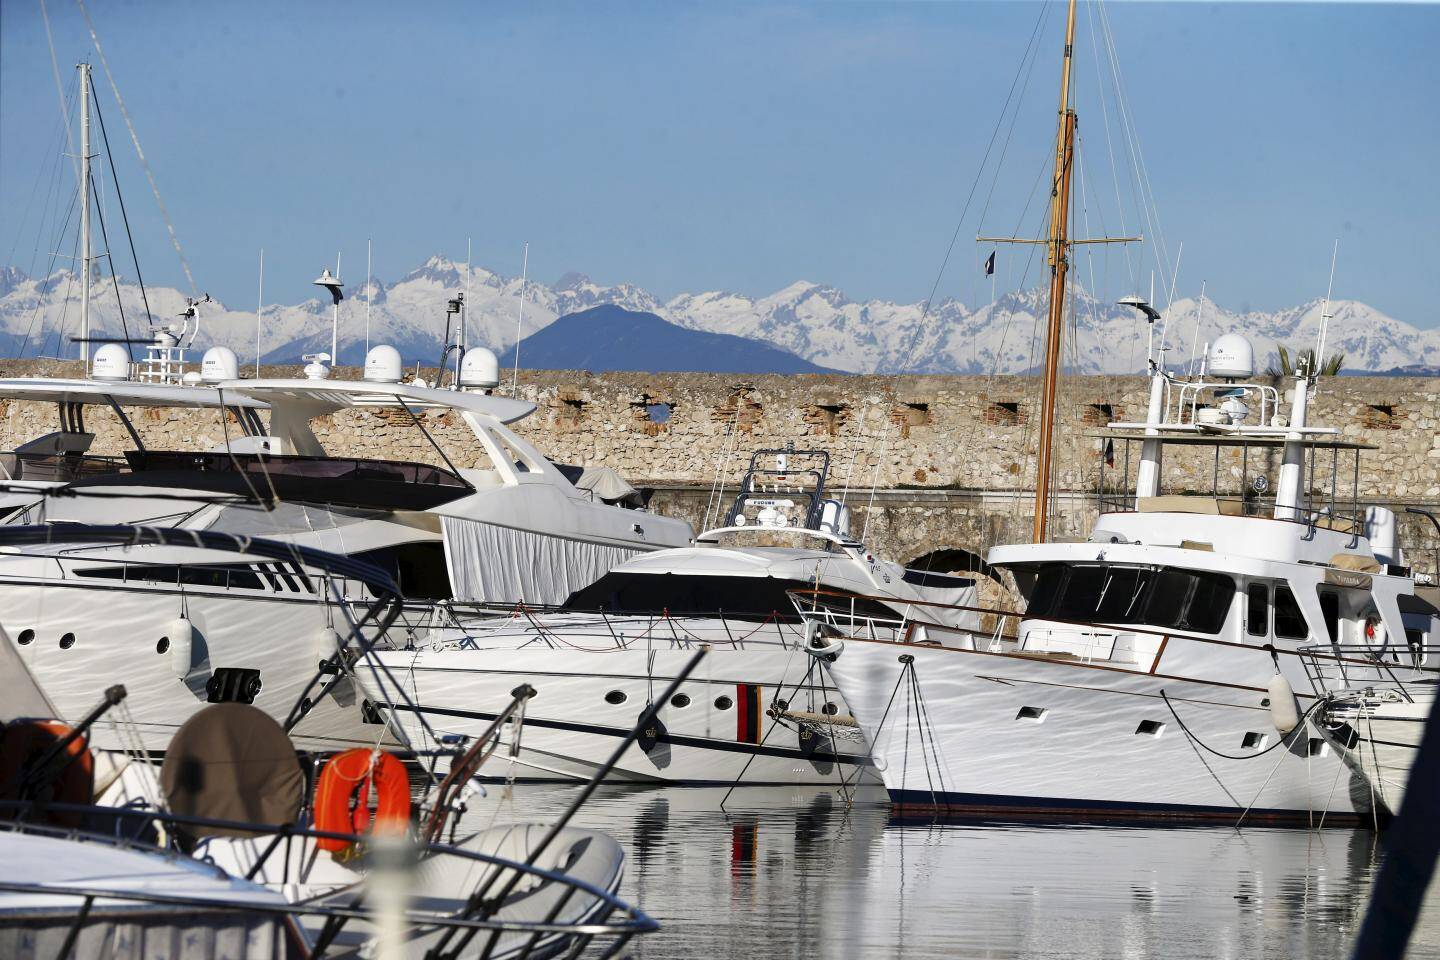 Le port Vauban à Antibes.